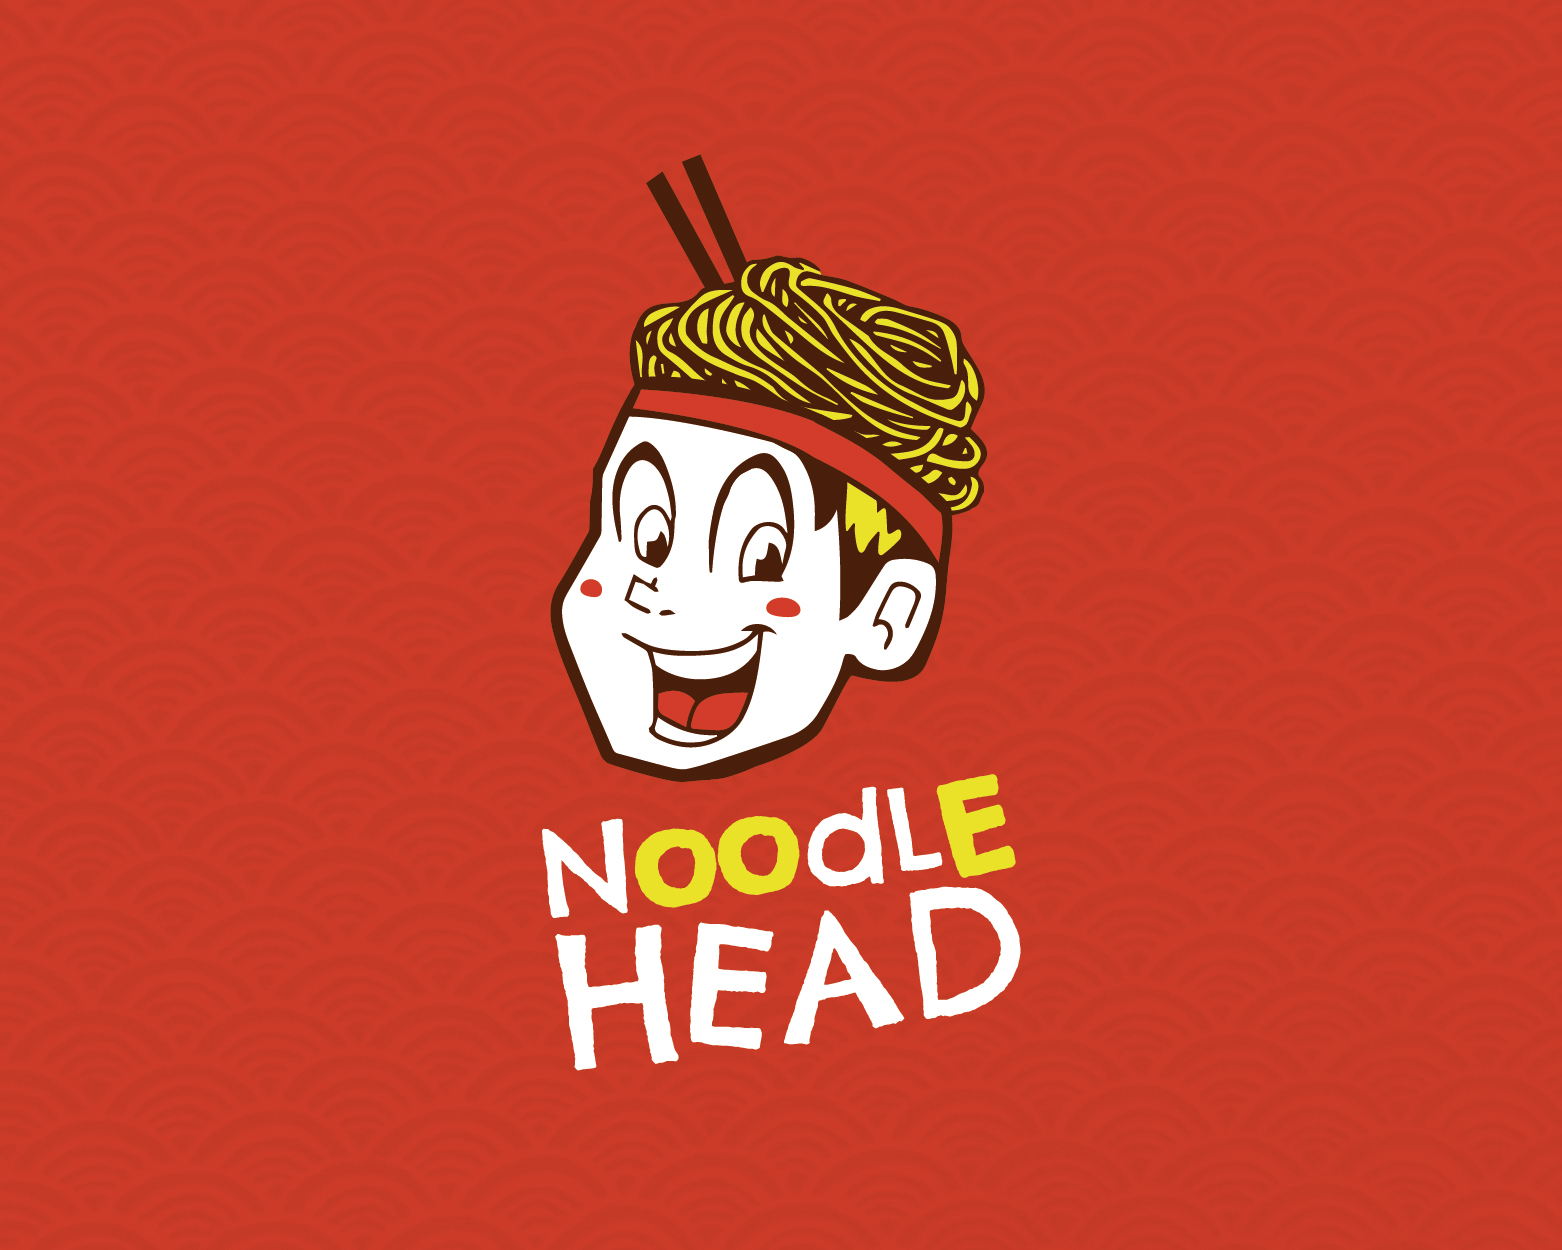 Noodle Head by bluedward  a perfect logo for Restaurant